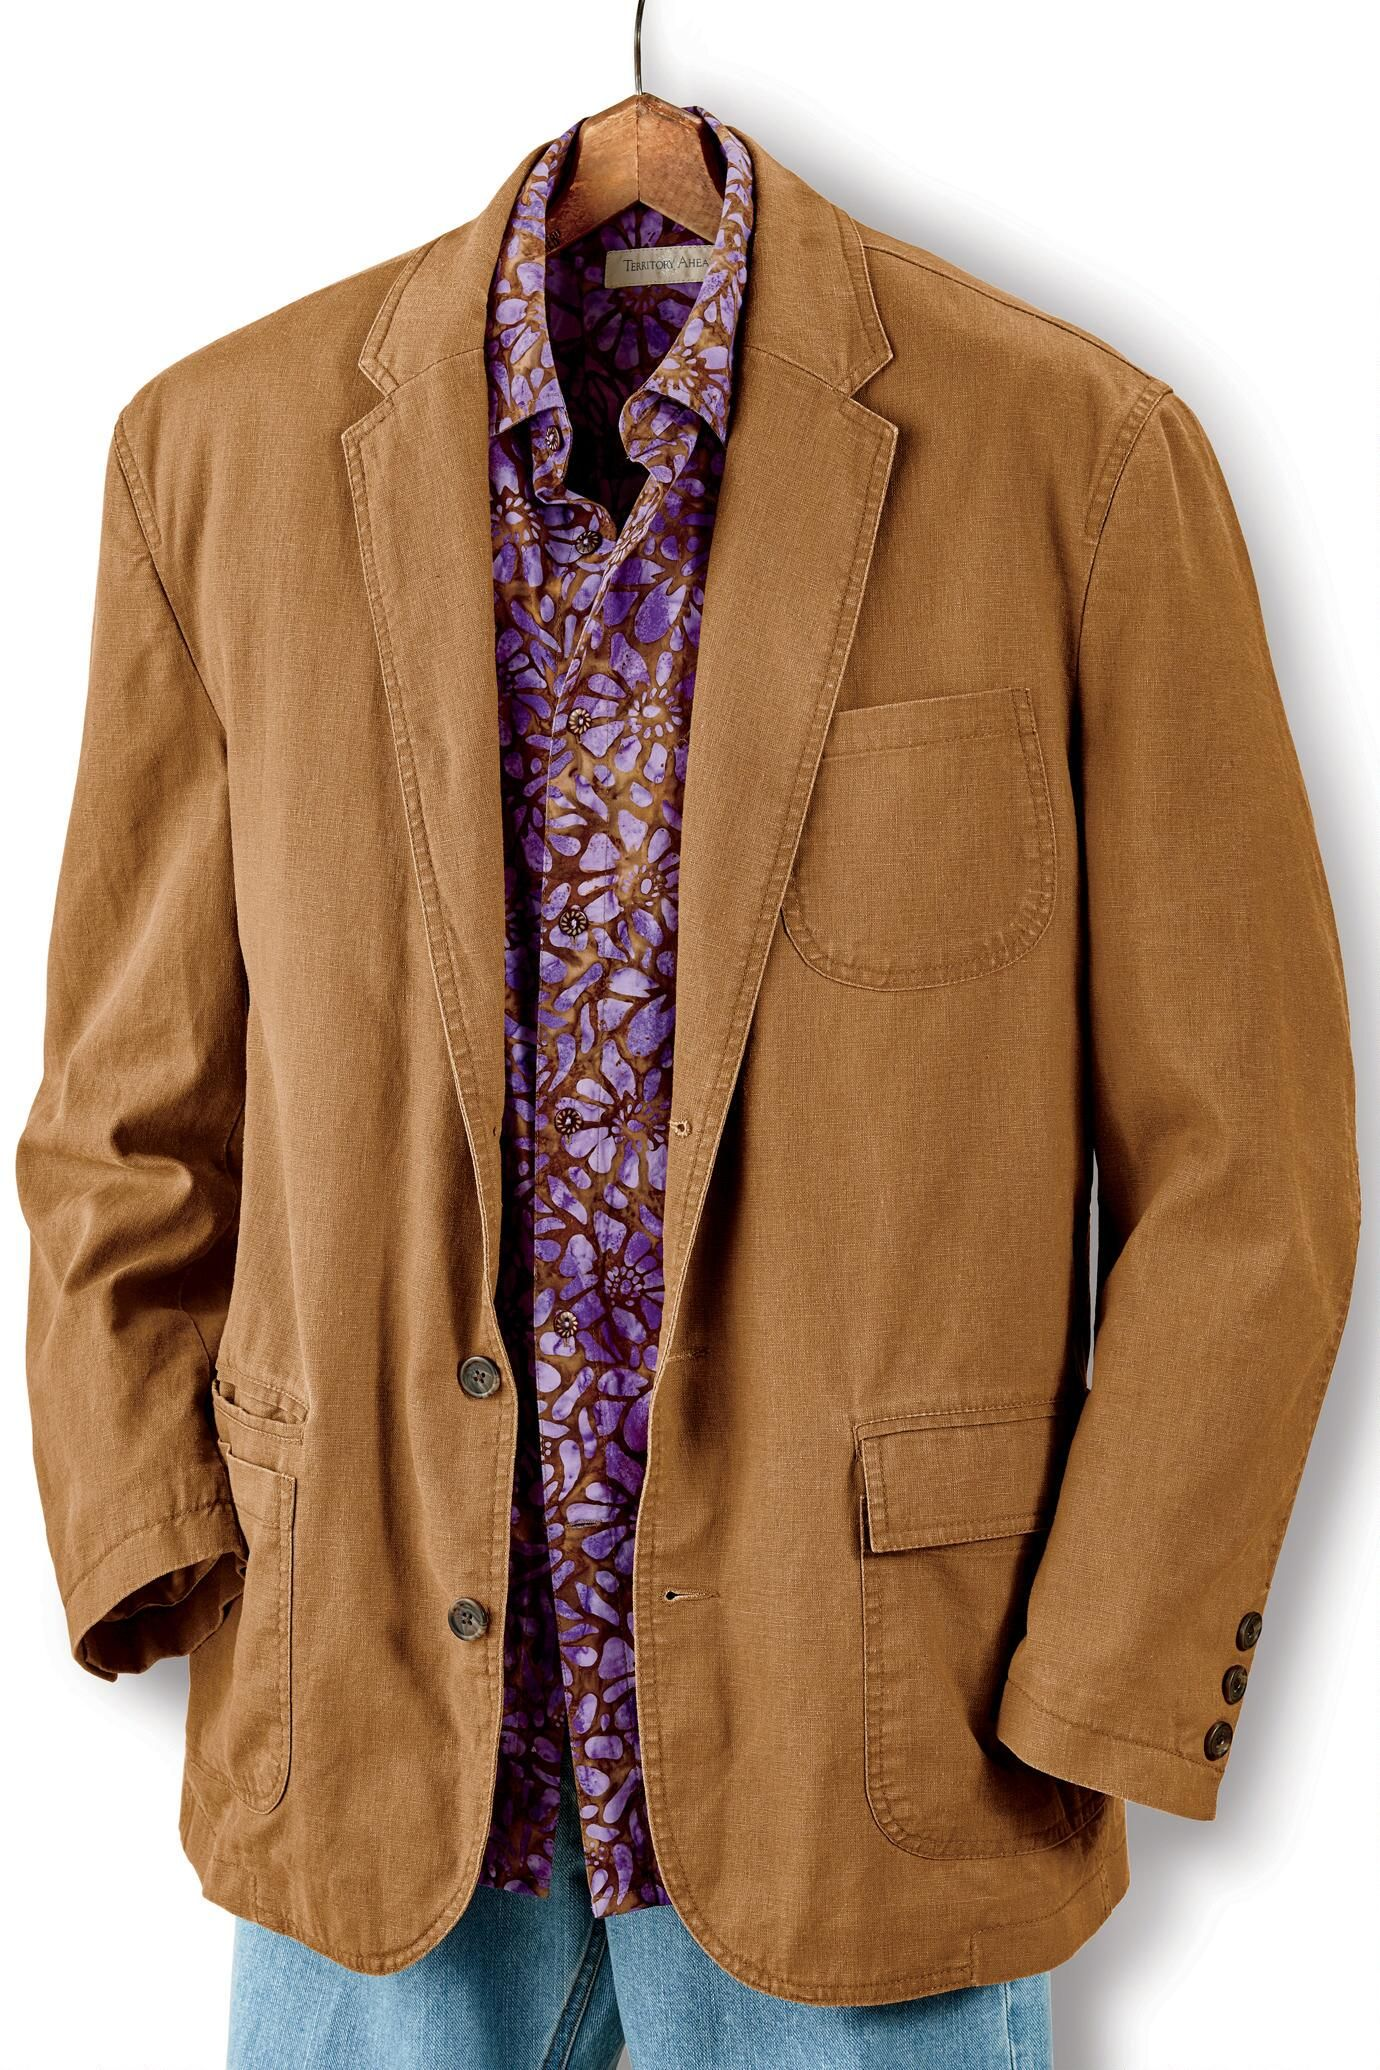 10 Casual Wardrobe Essentials For Cool Temperatures | Sport coat